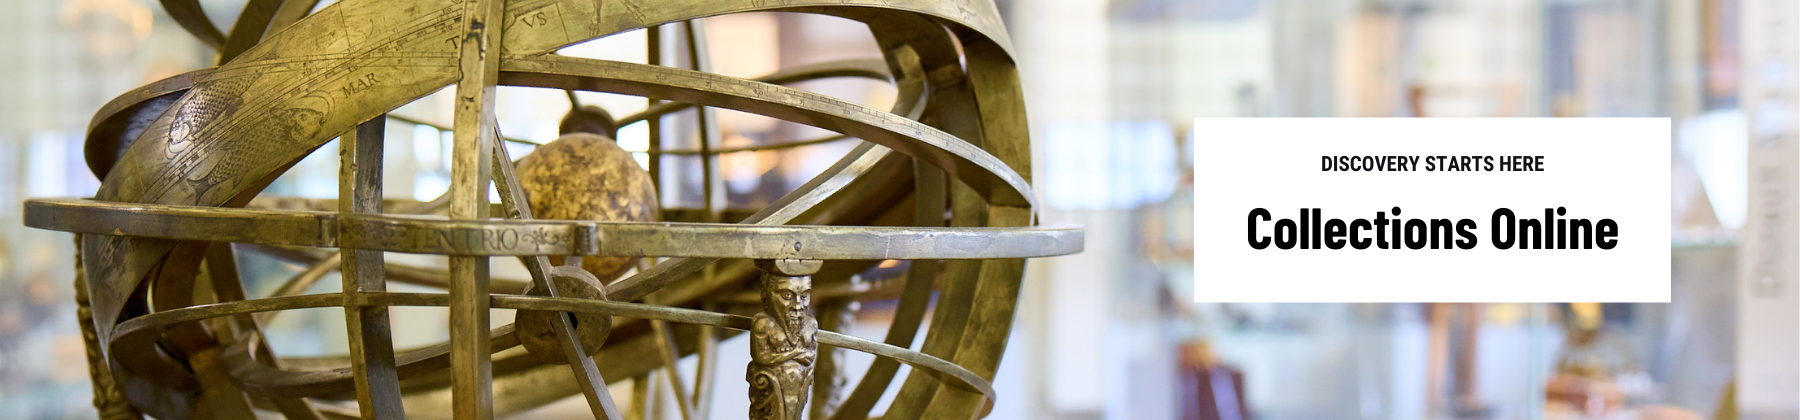 Collections Online banner image Armillary Sphere in Top Gallery Photo by Ian Wallman